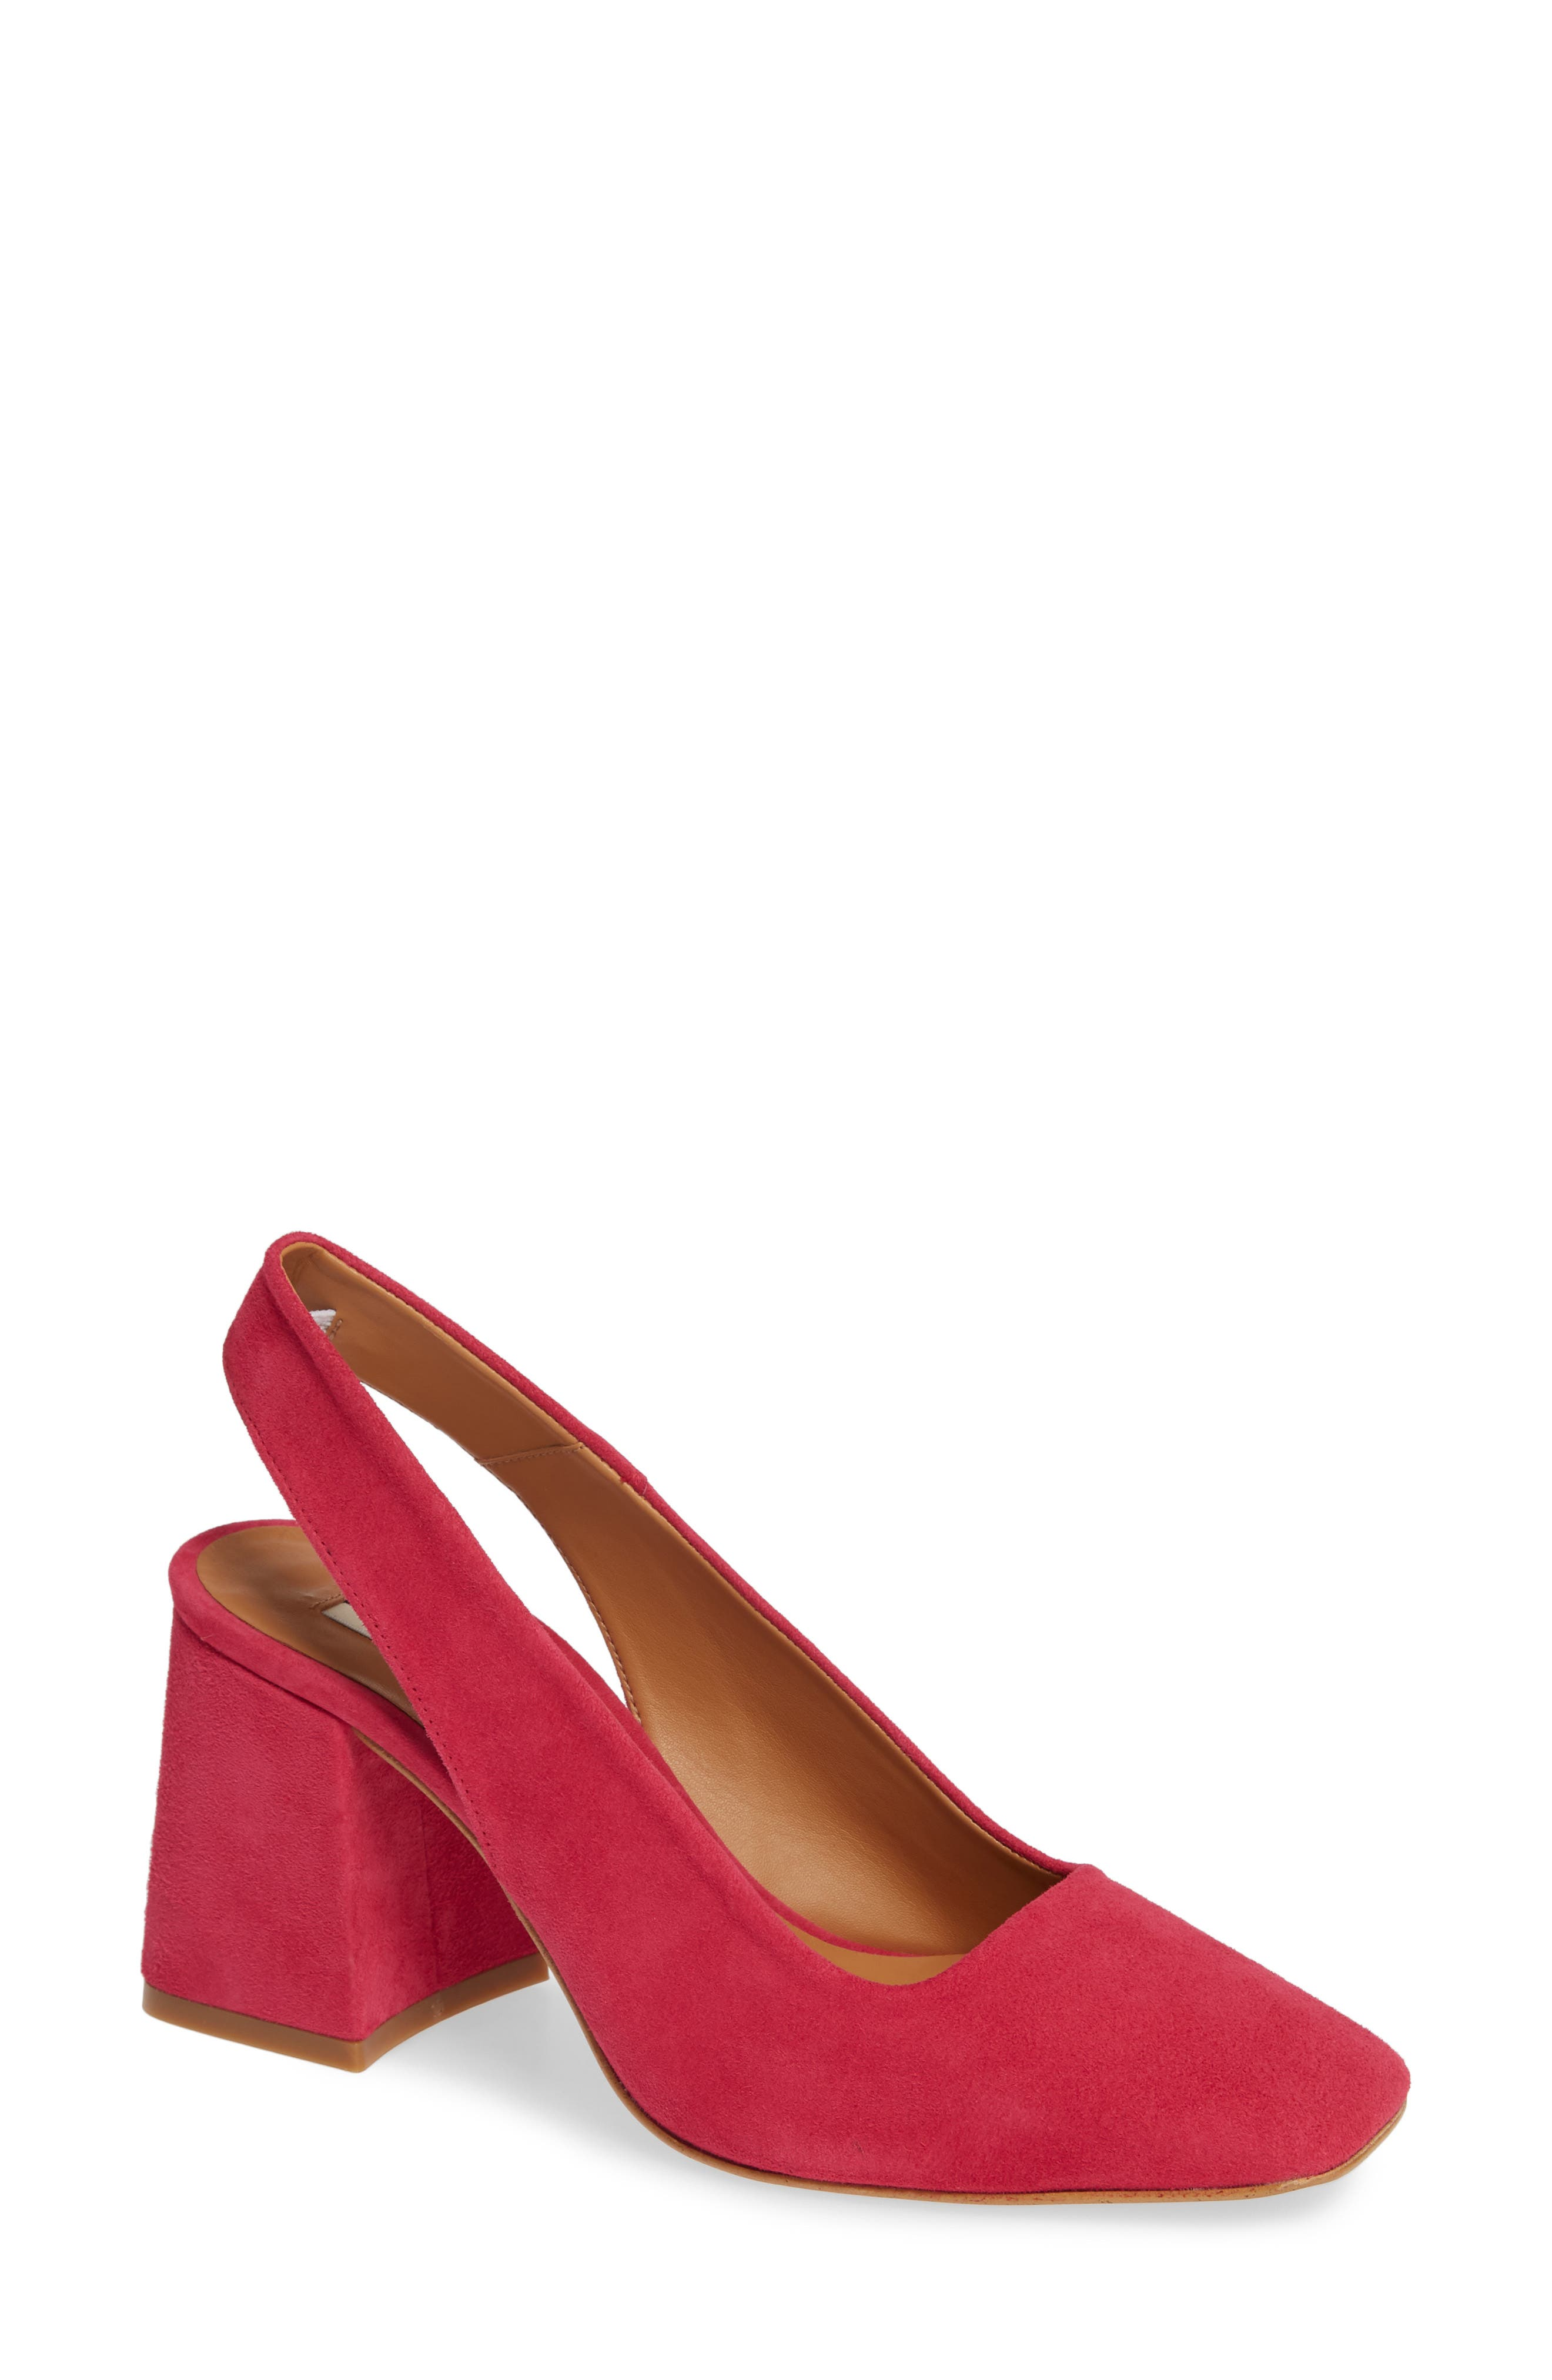 Gainor Block Heel Slingback Pump,                             Main thumbnail 1, color,                             PINK